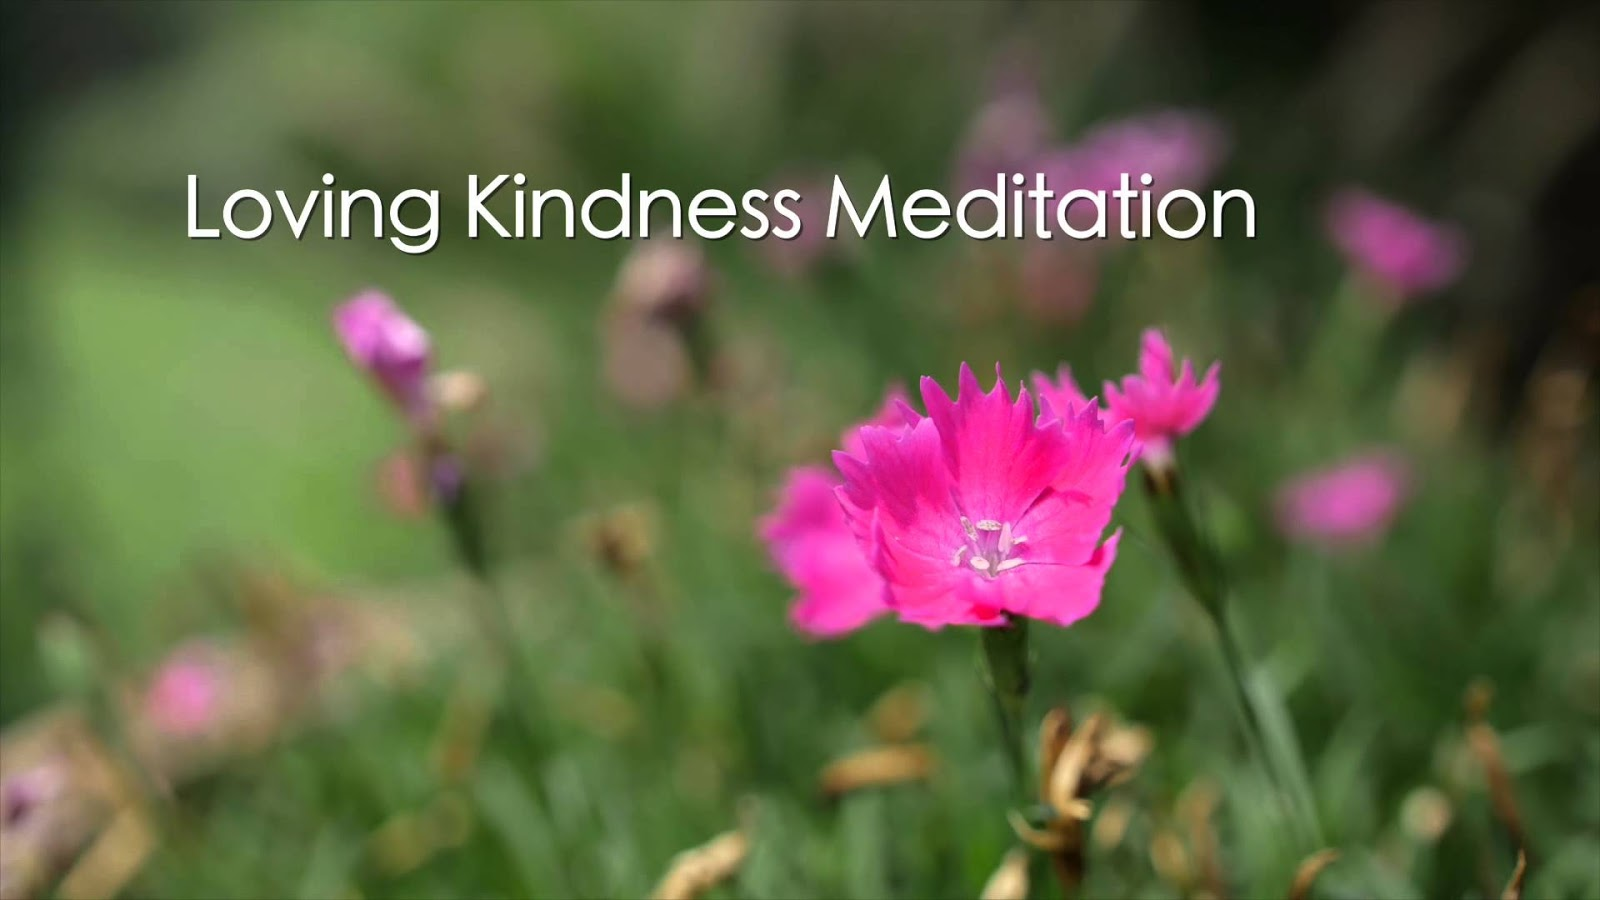 Loving Kindness Quotes Loving Kindness Meditation  Metta Meditation  Quotes India